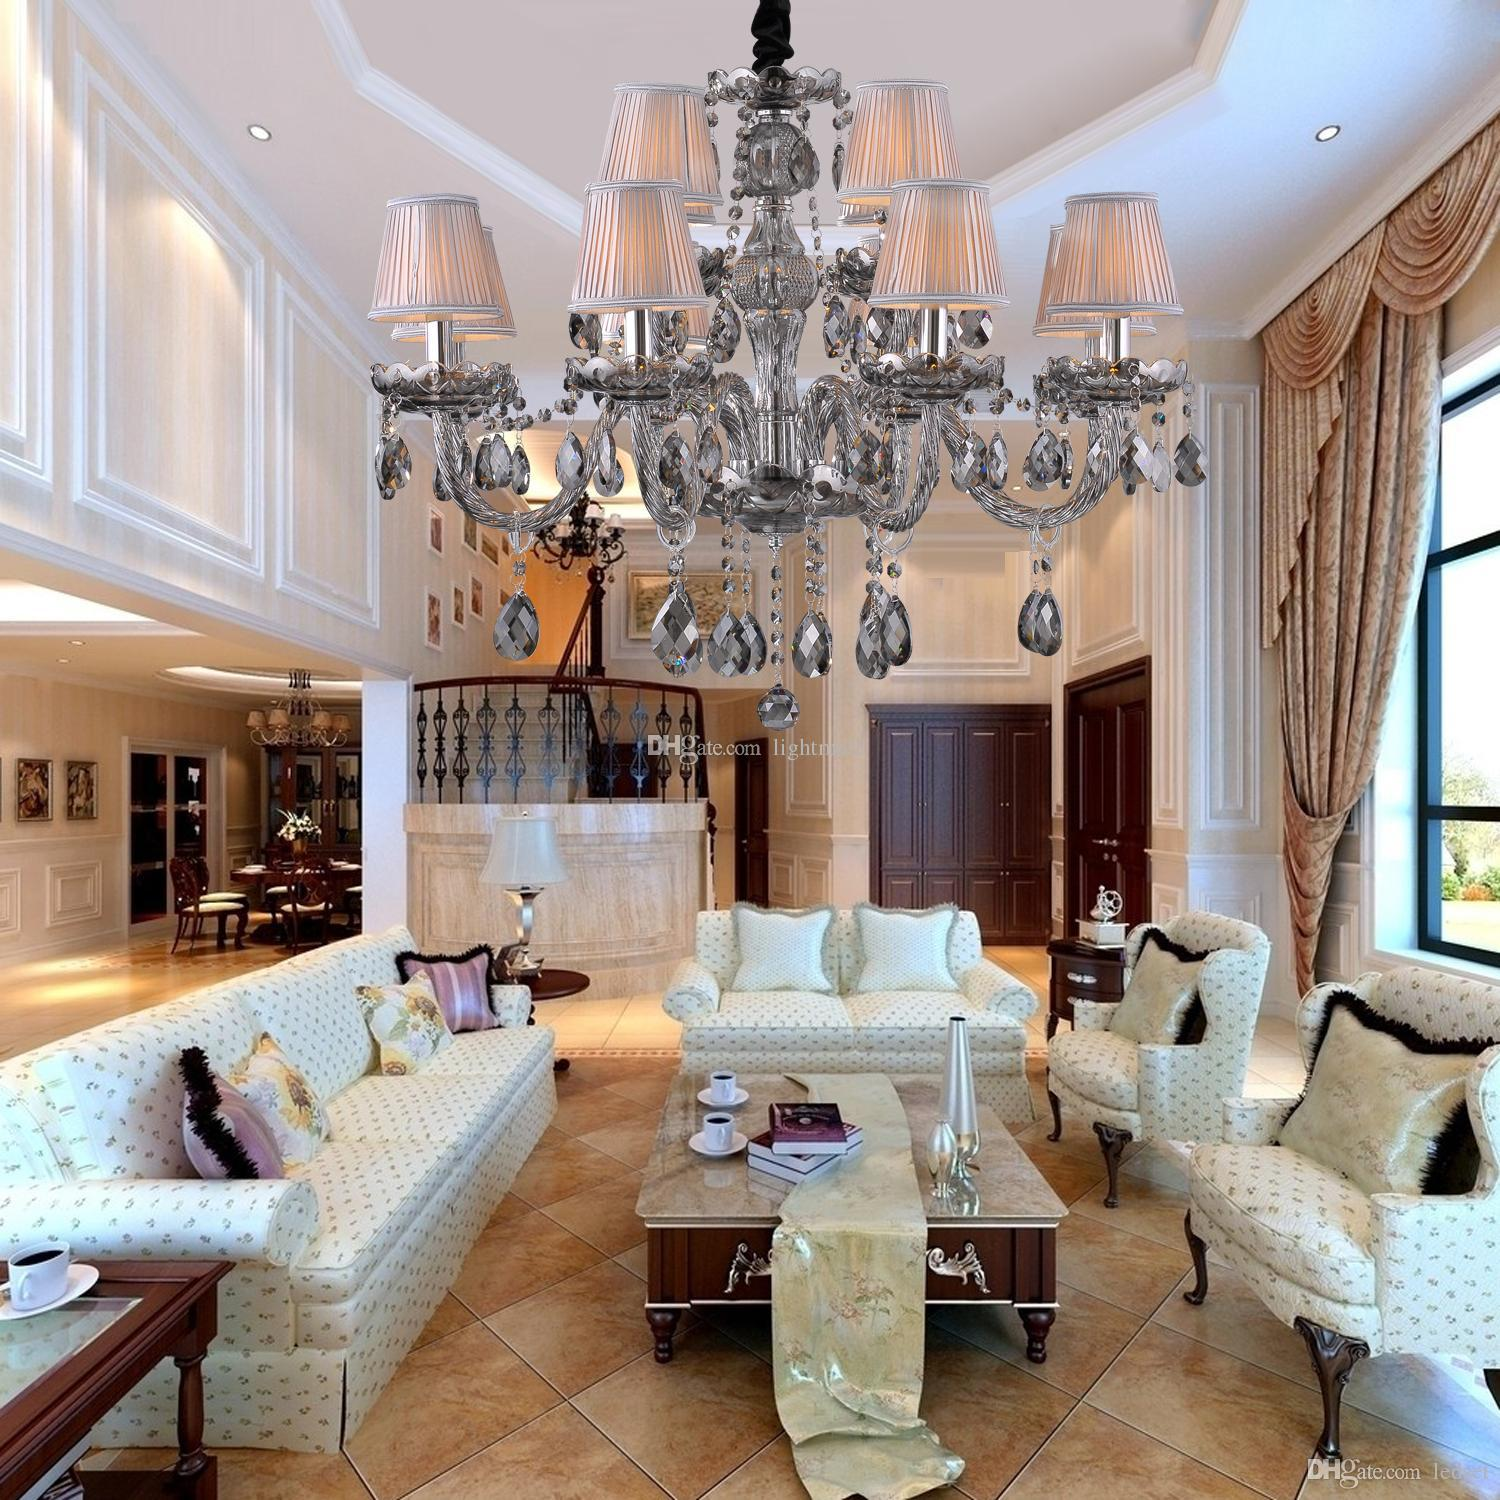 Gray Crystal Chandelier E14 Led Candle Blubs With 12 Lights Drop Pendent Large Living Dining Room MS6023 8 4